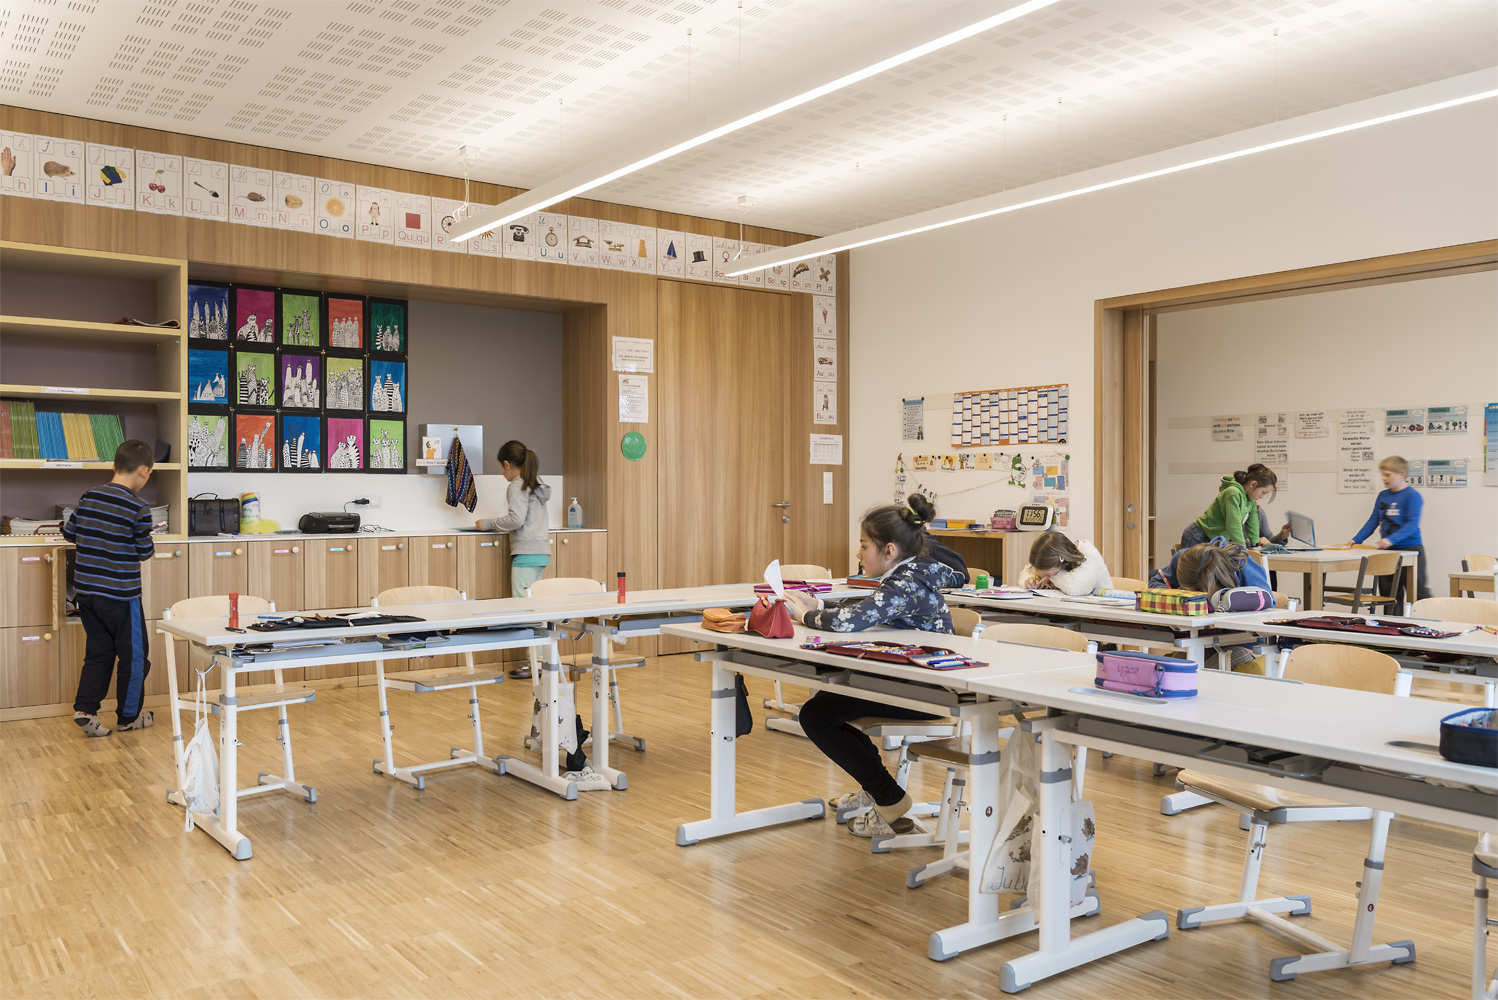 Elementary School - classroom with adjoined learning space Oliver Jaist